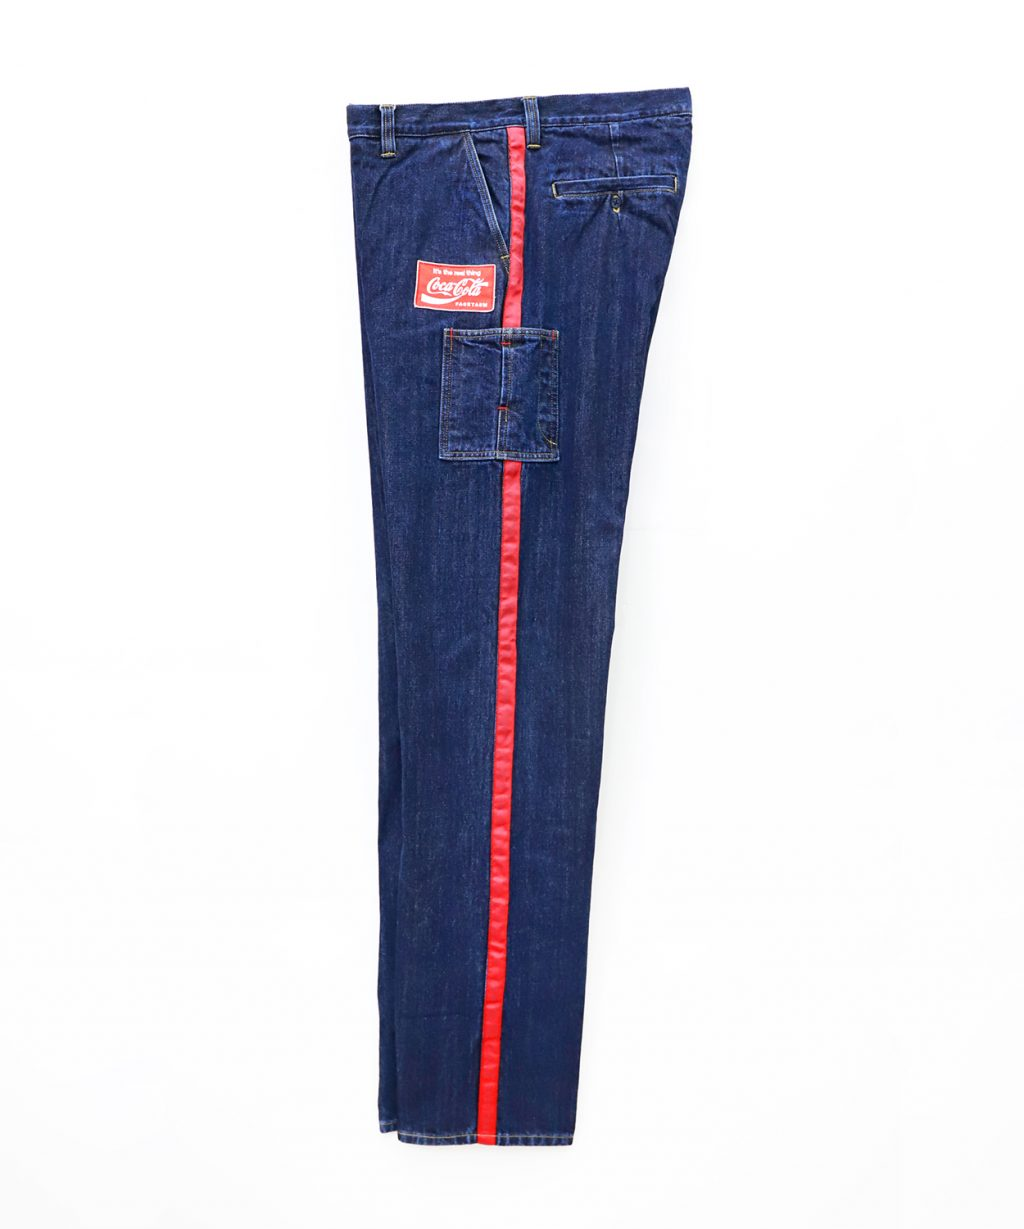 COCA-COLA-DENIM-PANTS-indigo3-1024x1229.jpg